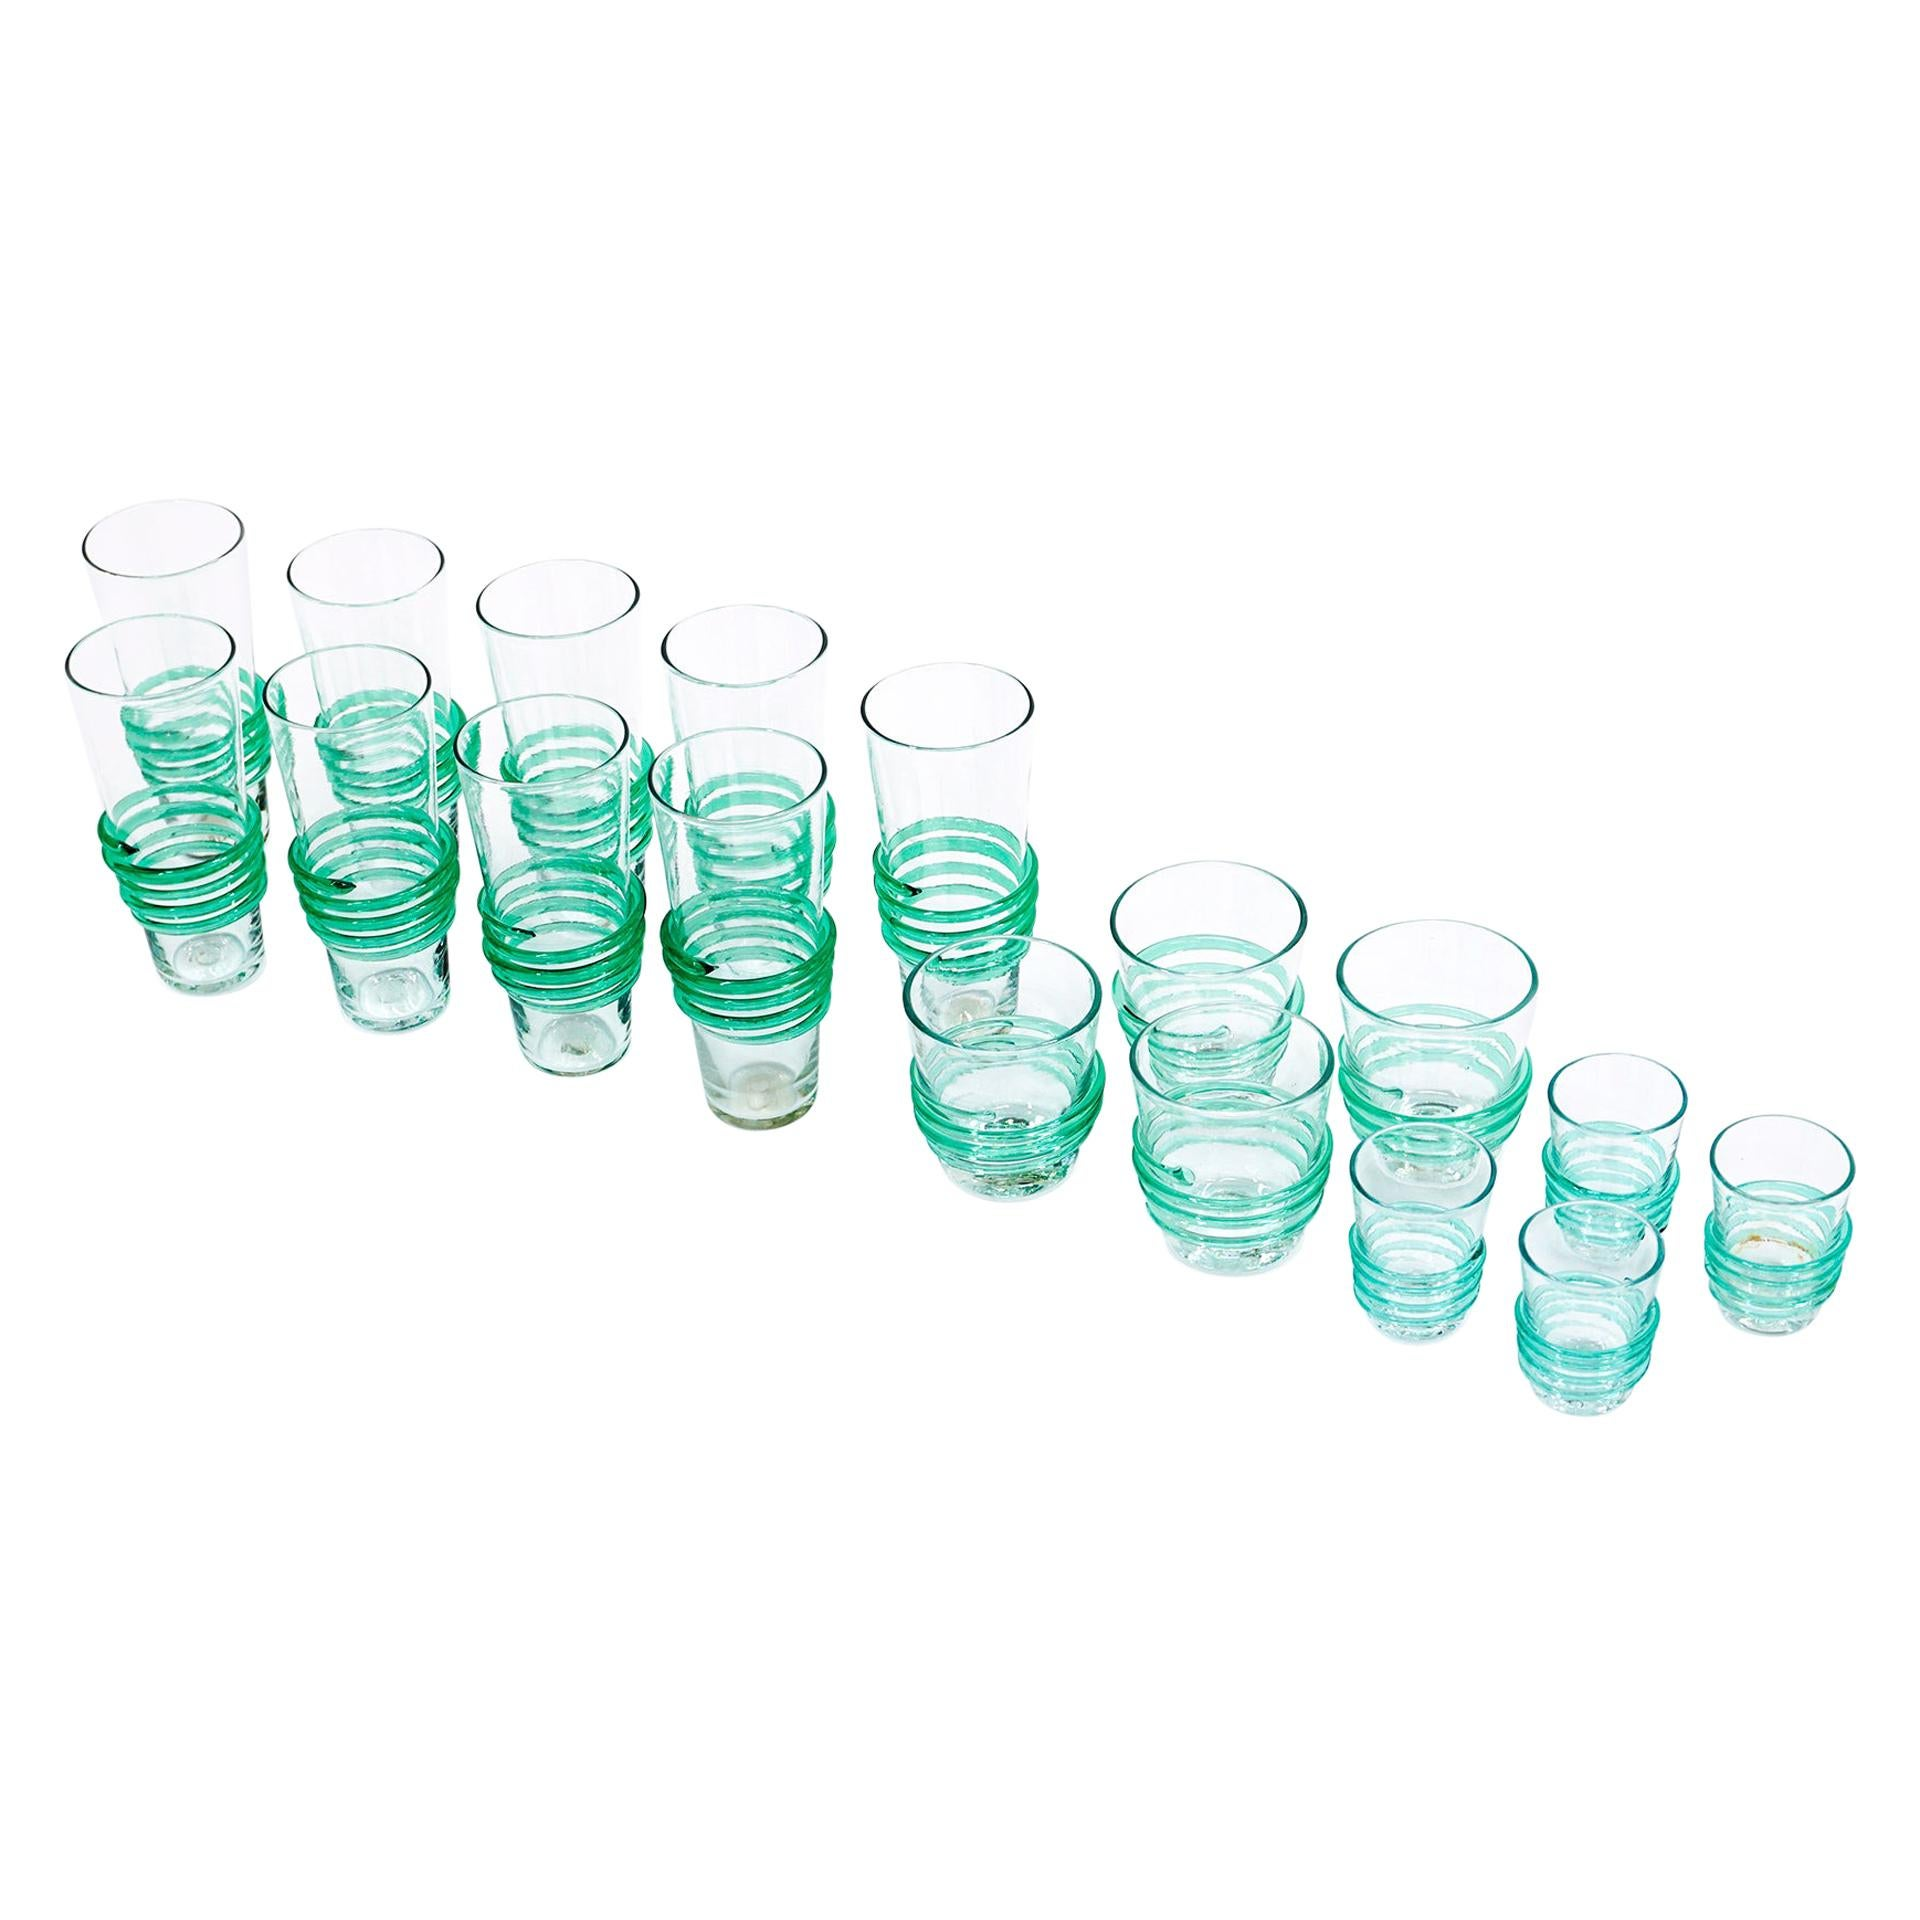 Drinking, Cocktail, and Shot Glasses by Blenko, 1950s, Blown Clear & Green Glass